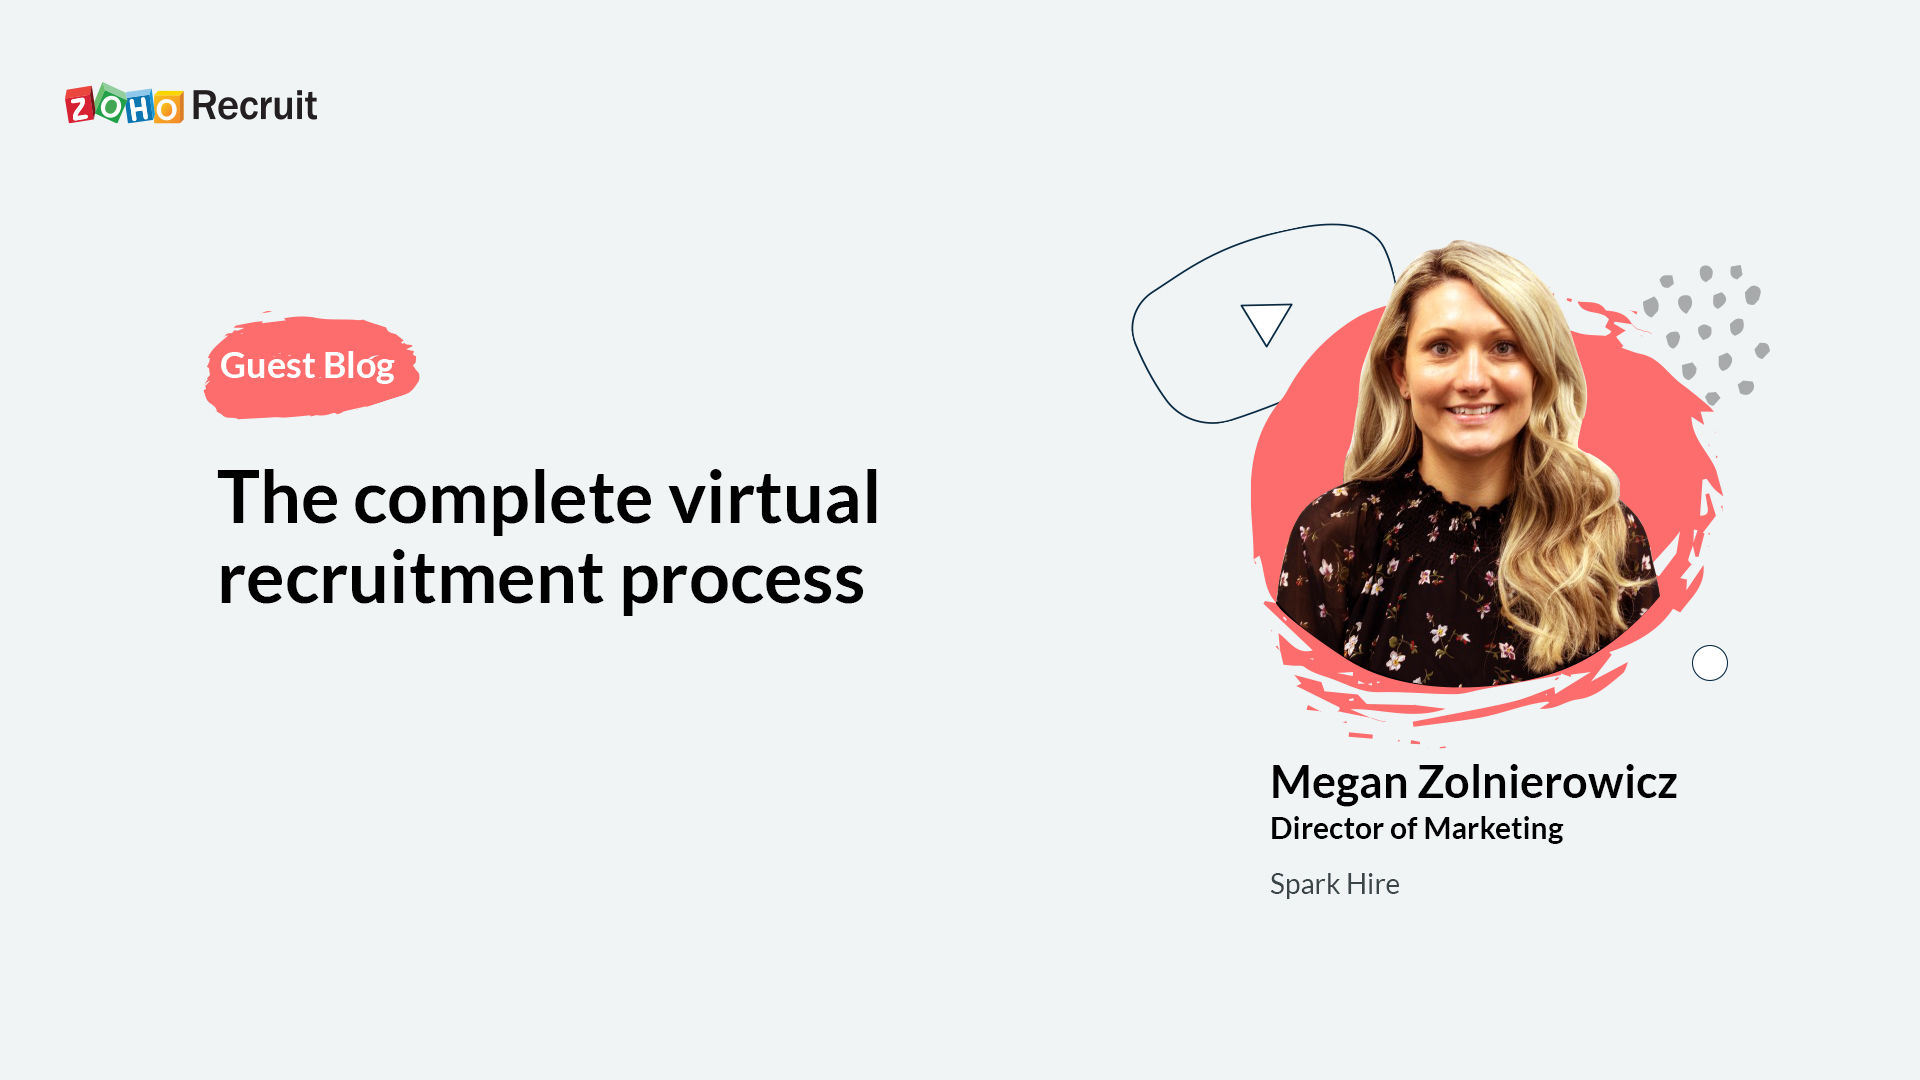 Expert Corner #5: The complete virtual recruitment process